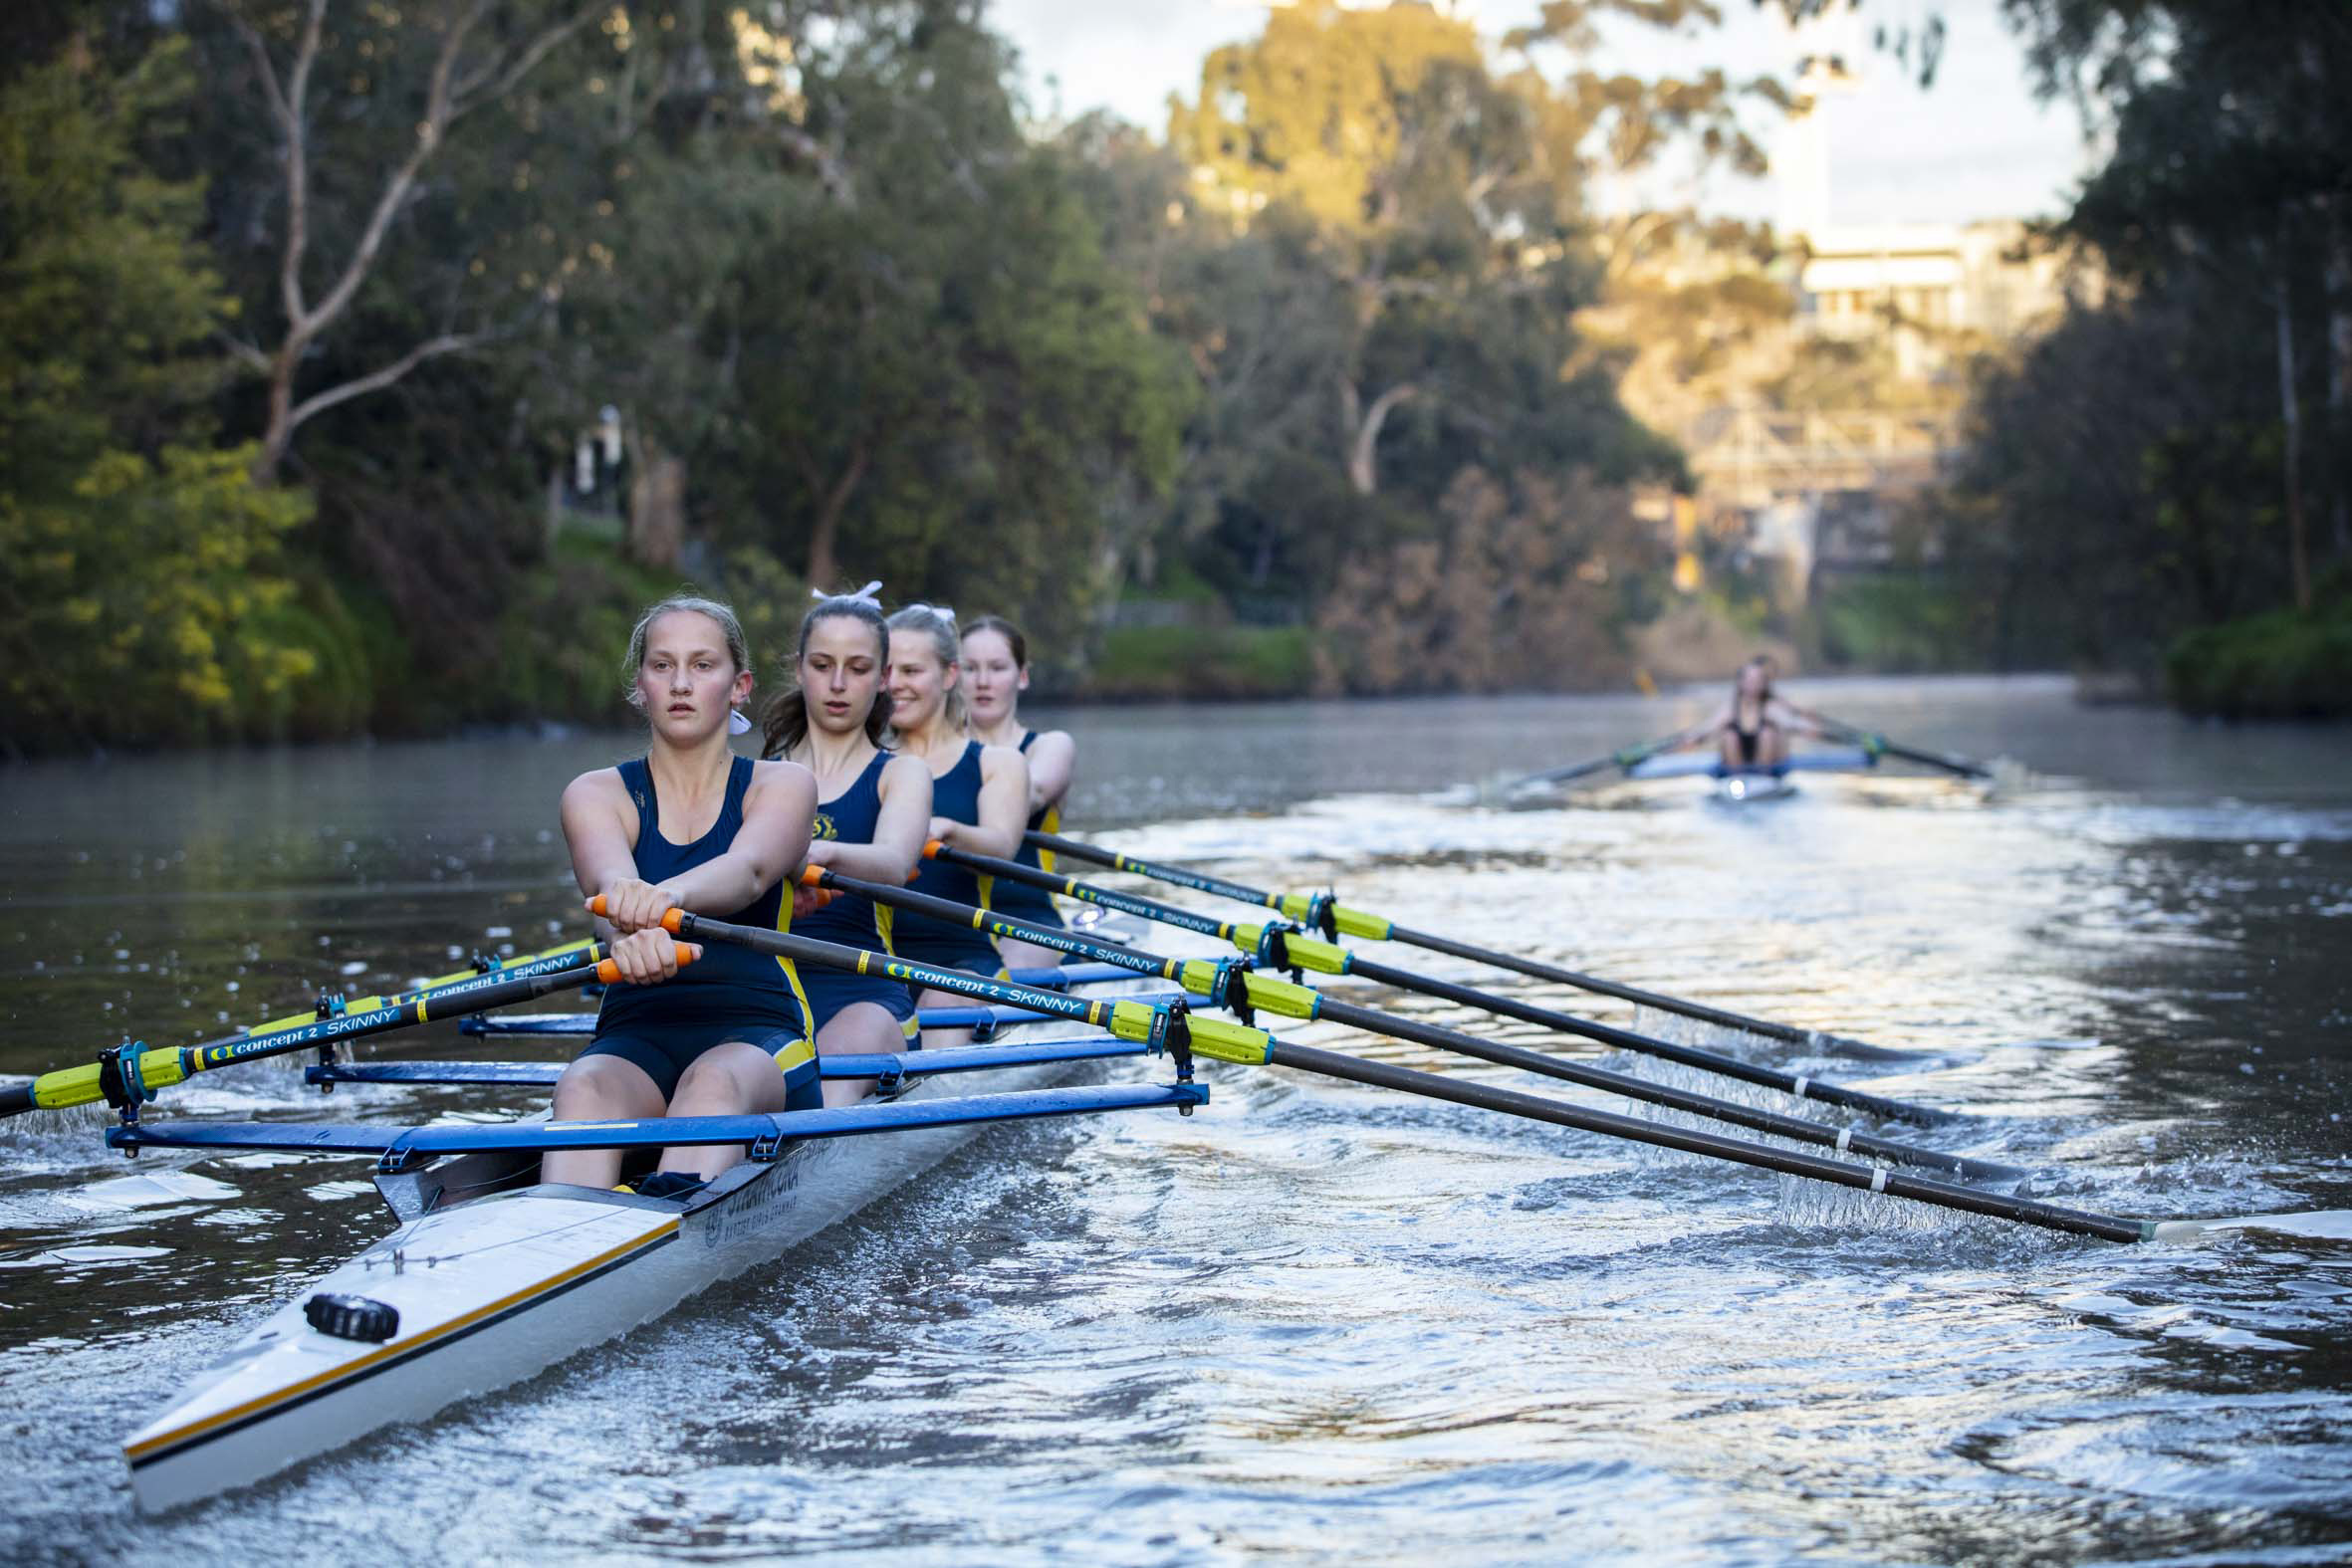 Yarra River rowing